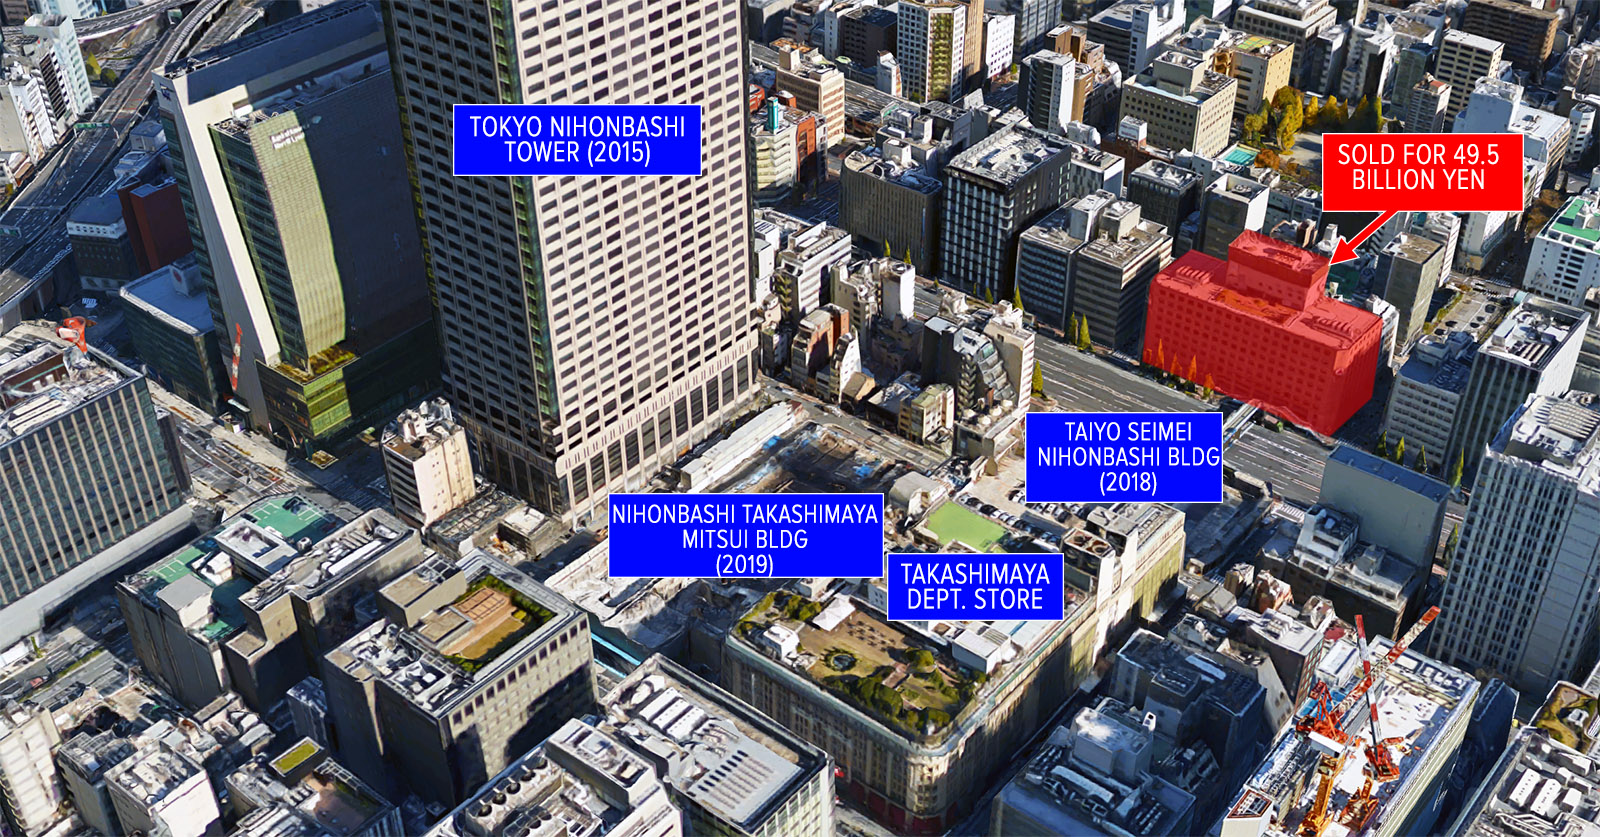 Takashimaya pays 442 million USD for two office buildings in Nihonbashi